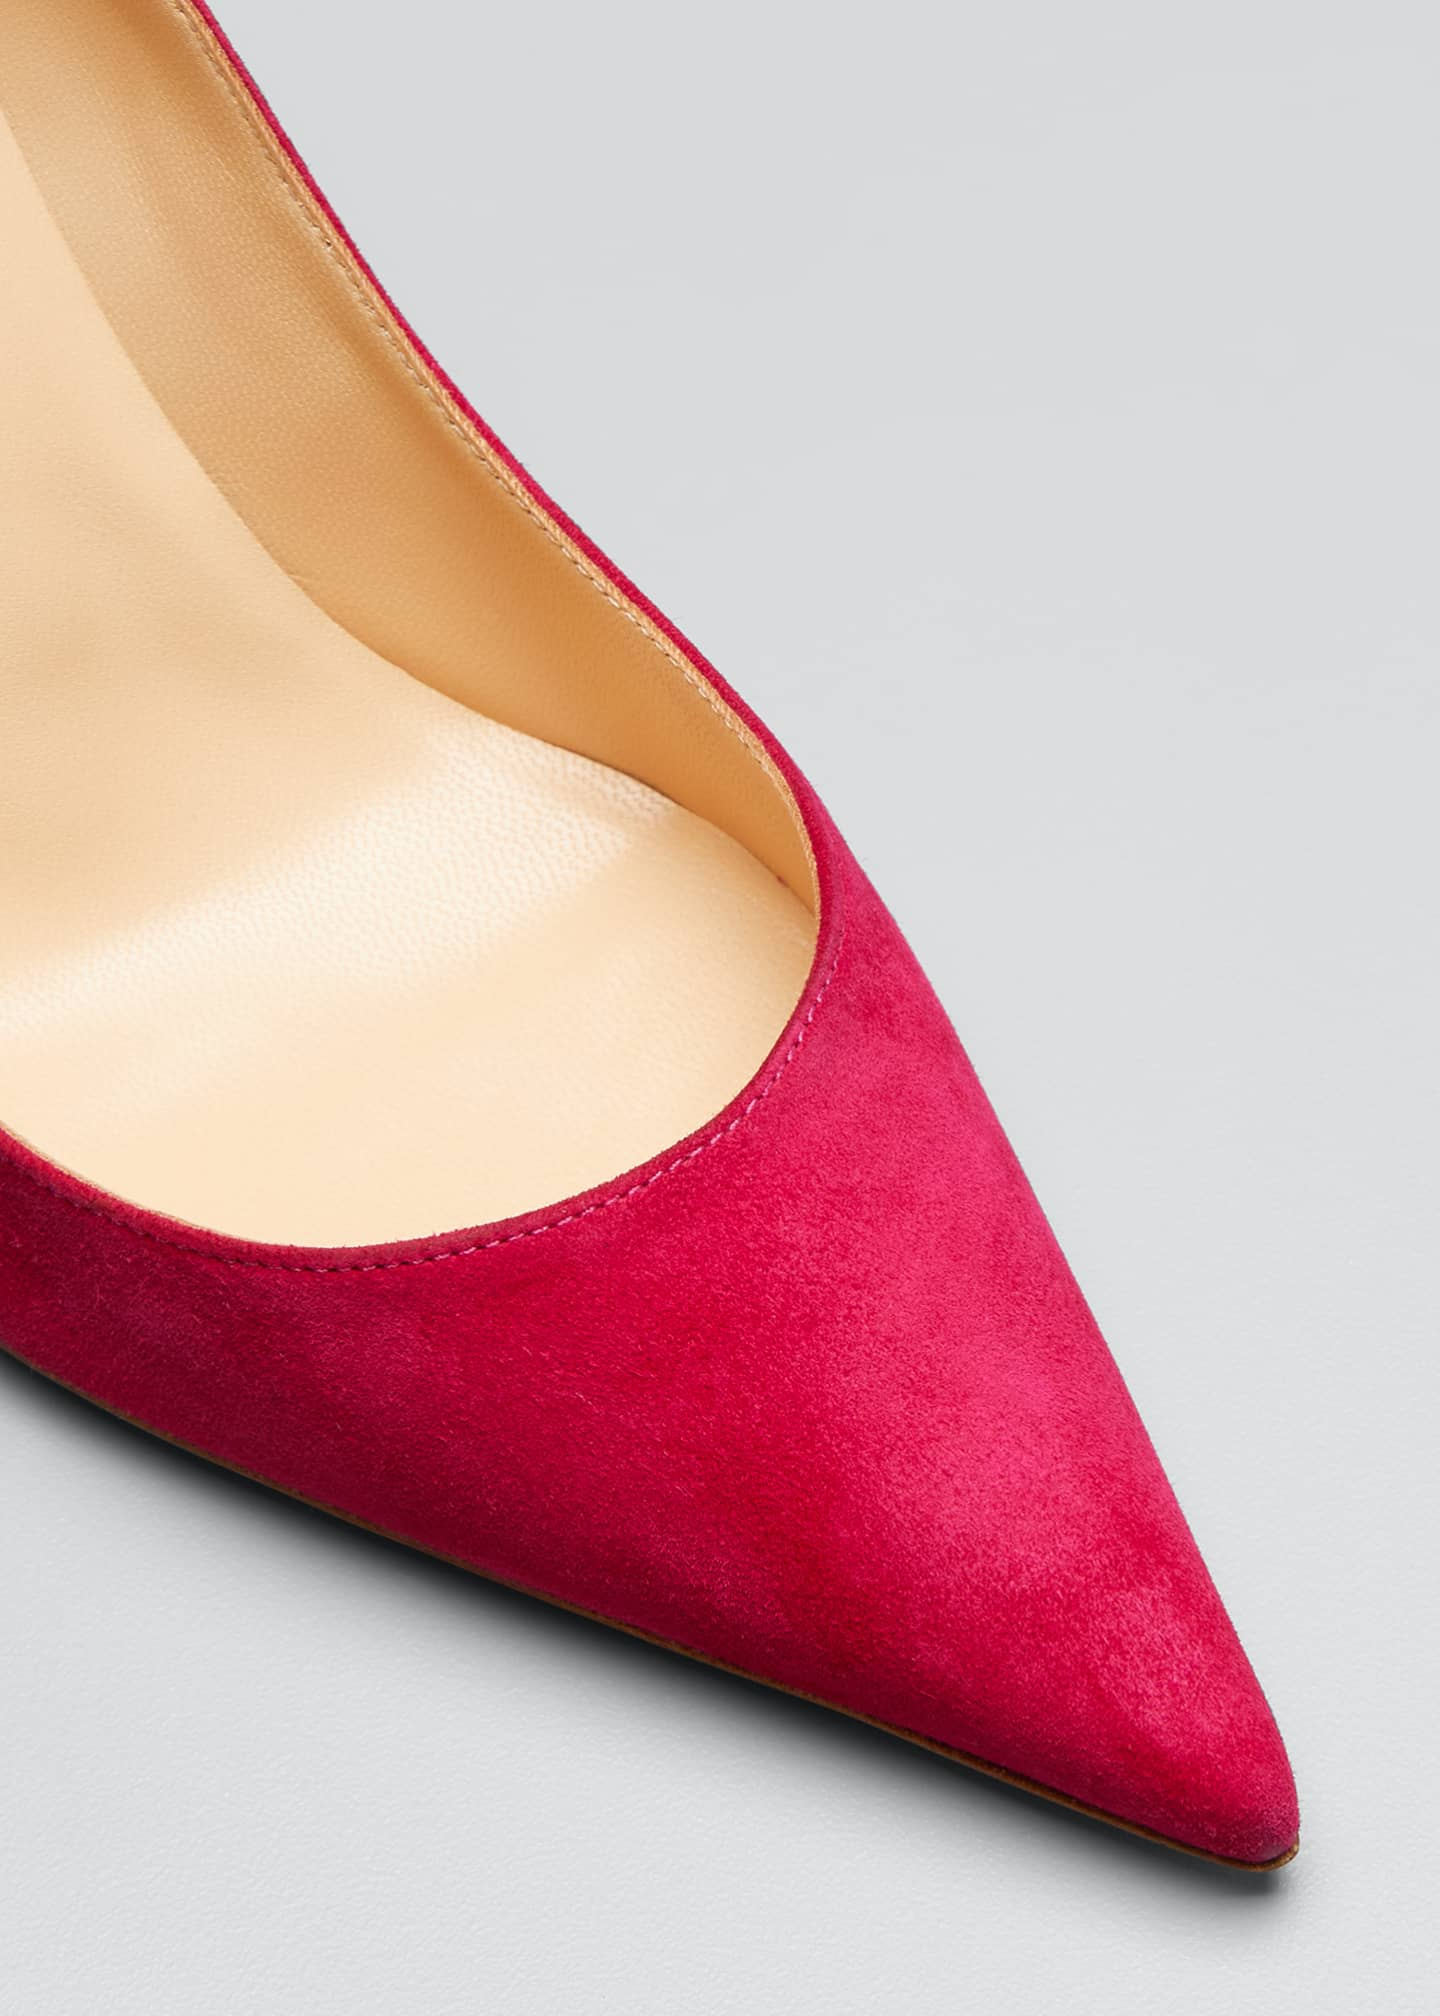 Image 5 of 5: Clare 80mm Suede Red Sole Pumps